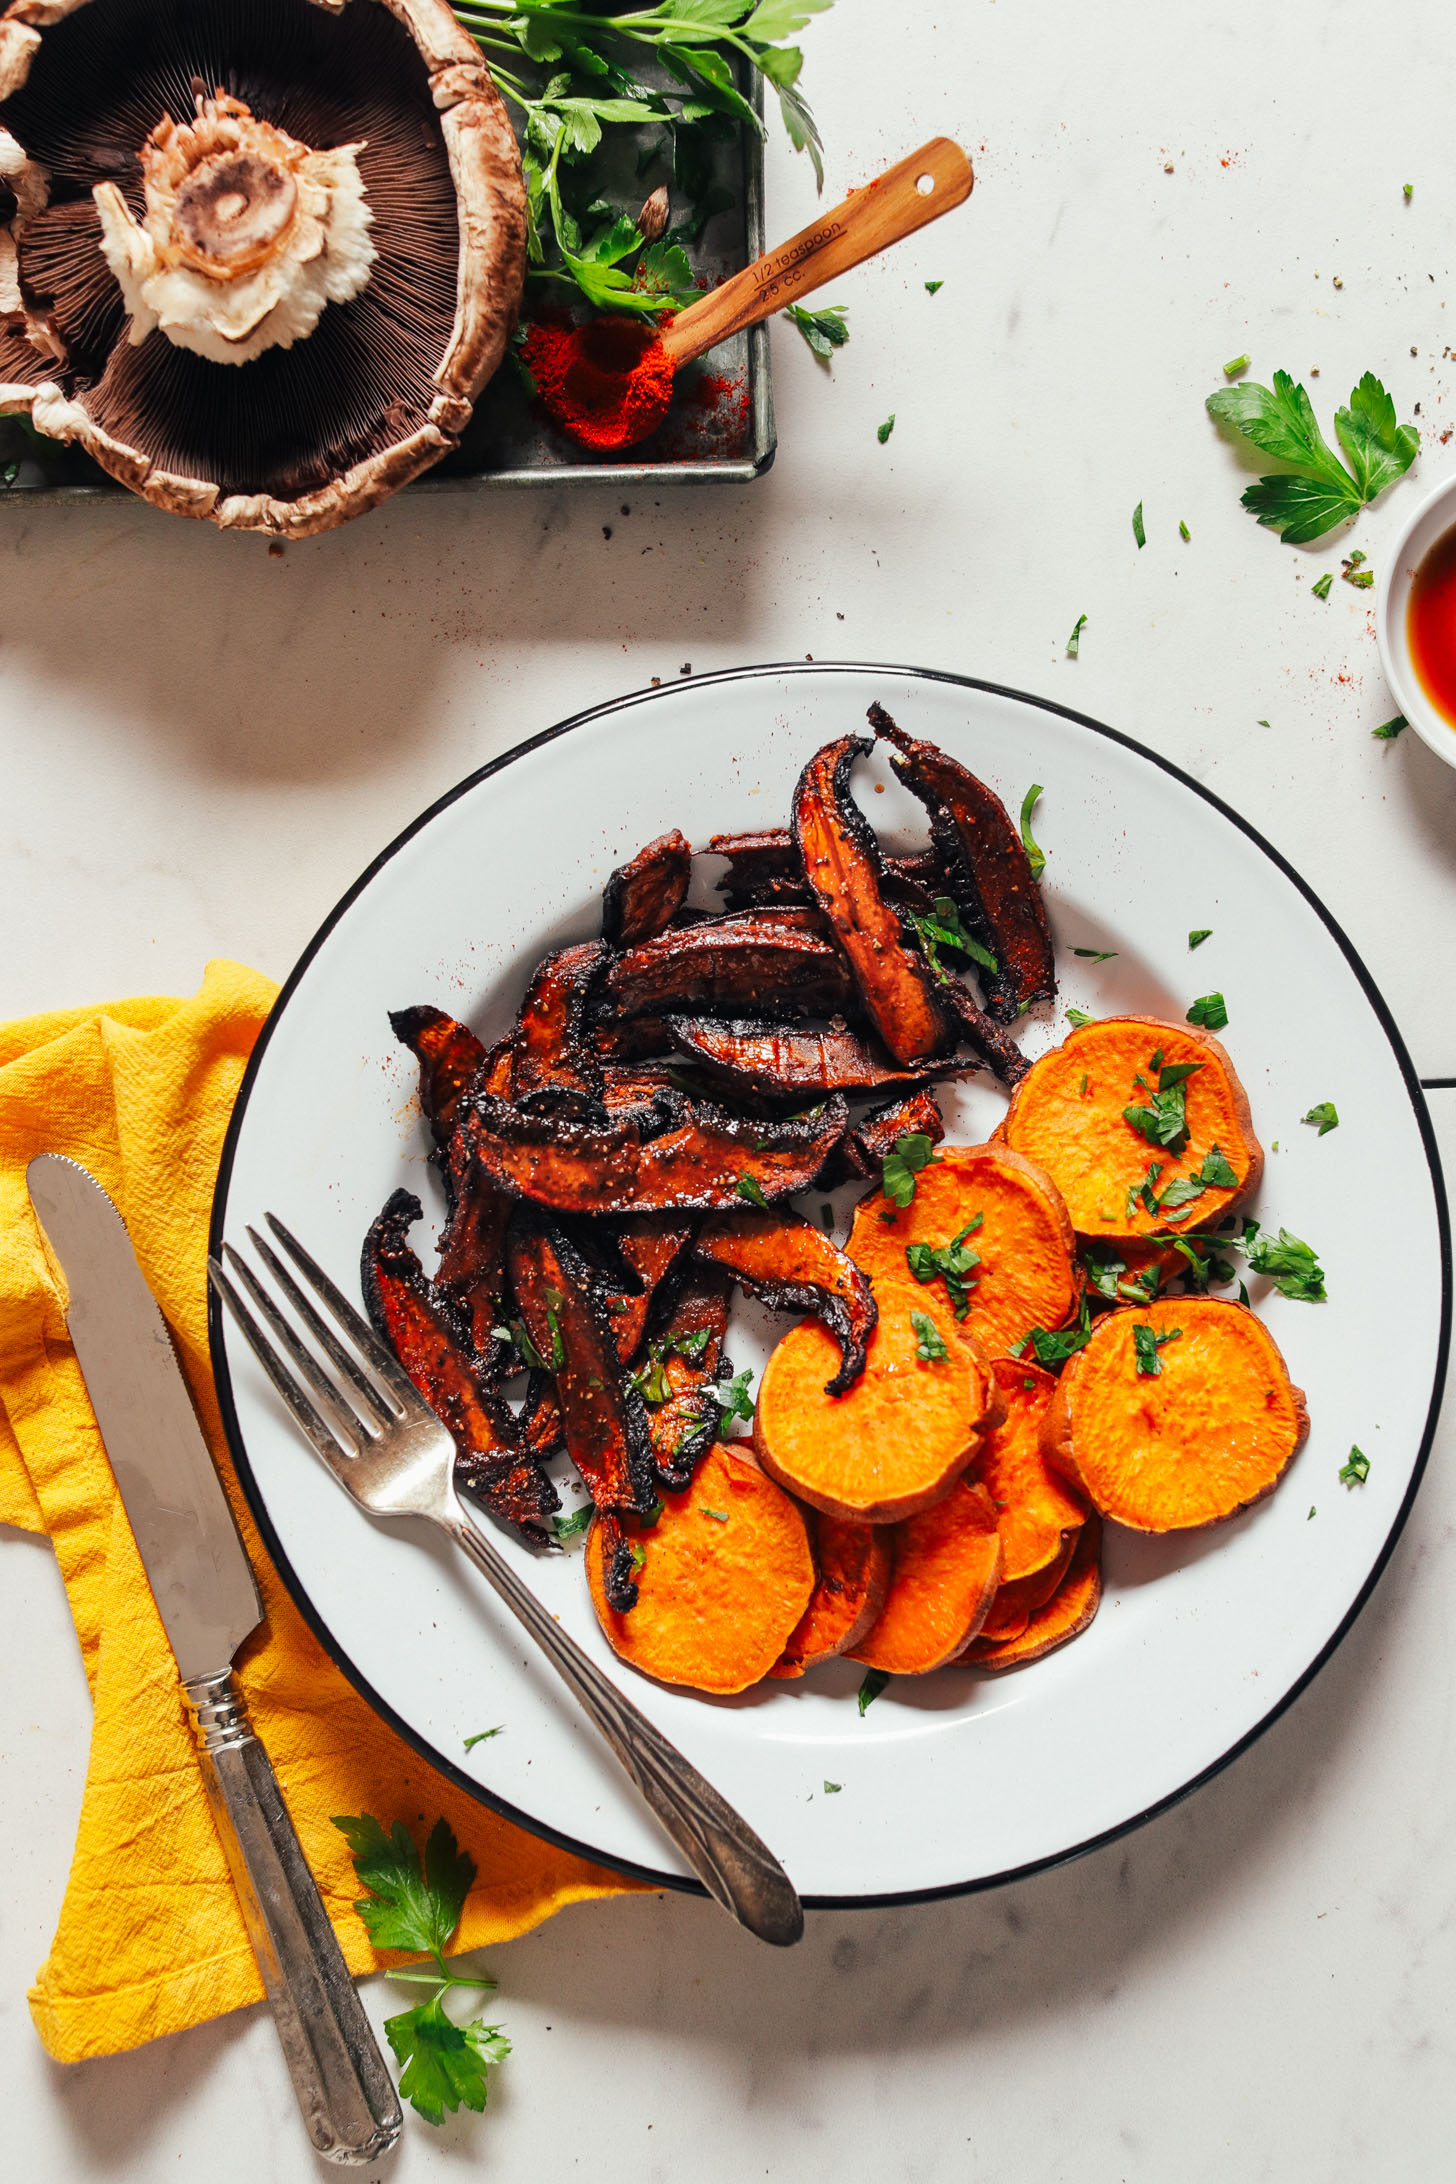 Plate of freshly baked sweet potatoes and Portobello Bacon topped with fresh parsley